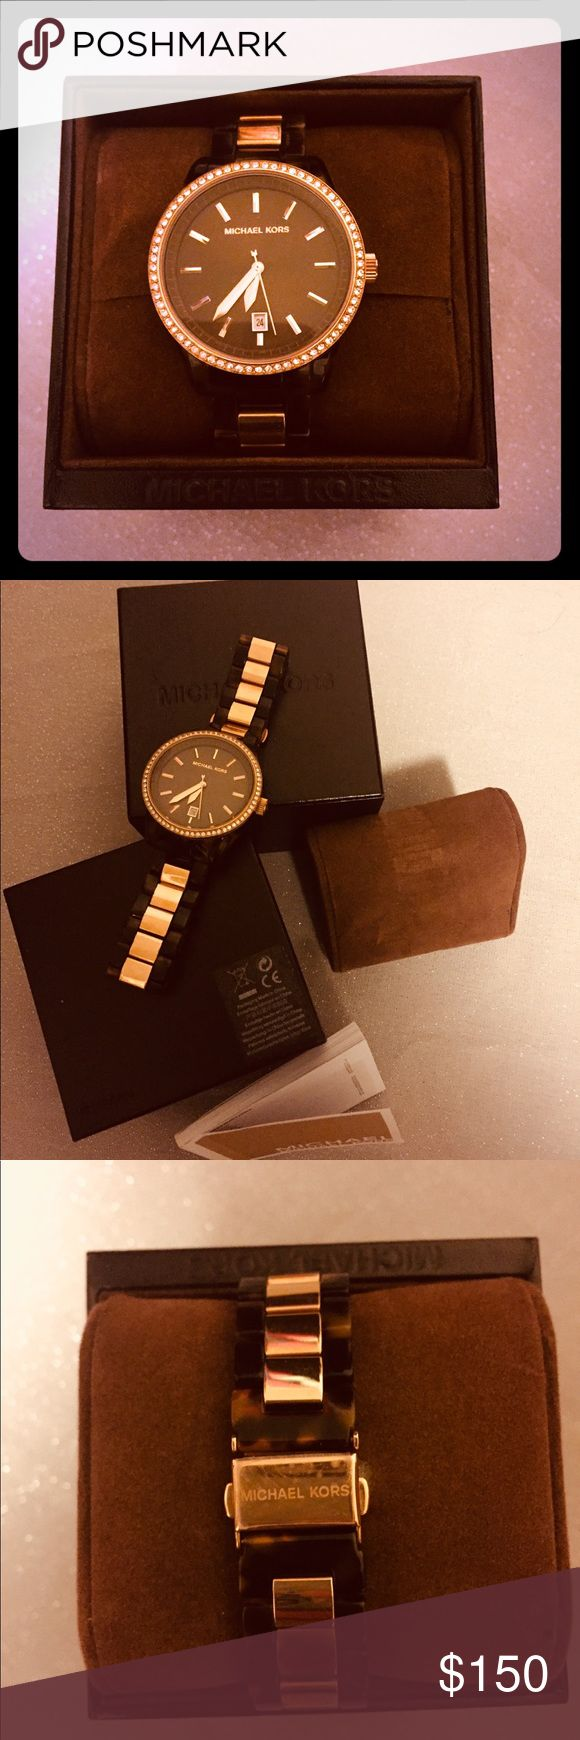 Michael Kors Watch MK-5714 Tortoise Shell Watch New In Box, No Tags KORS Michael Kors Accessories Watches